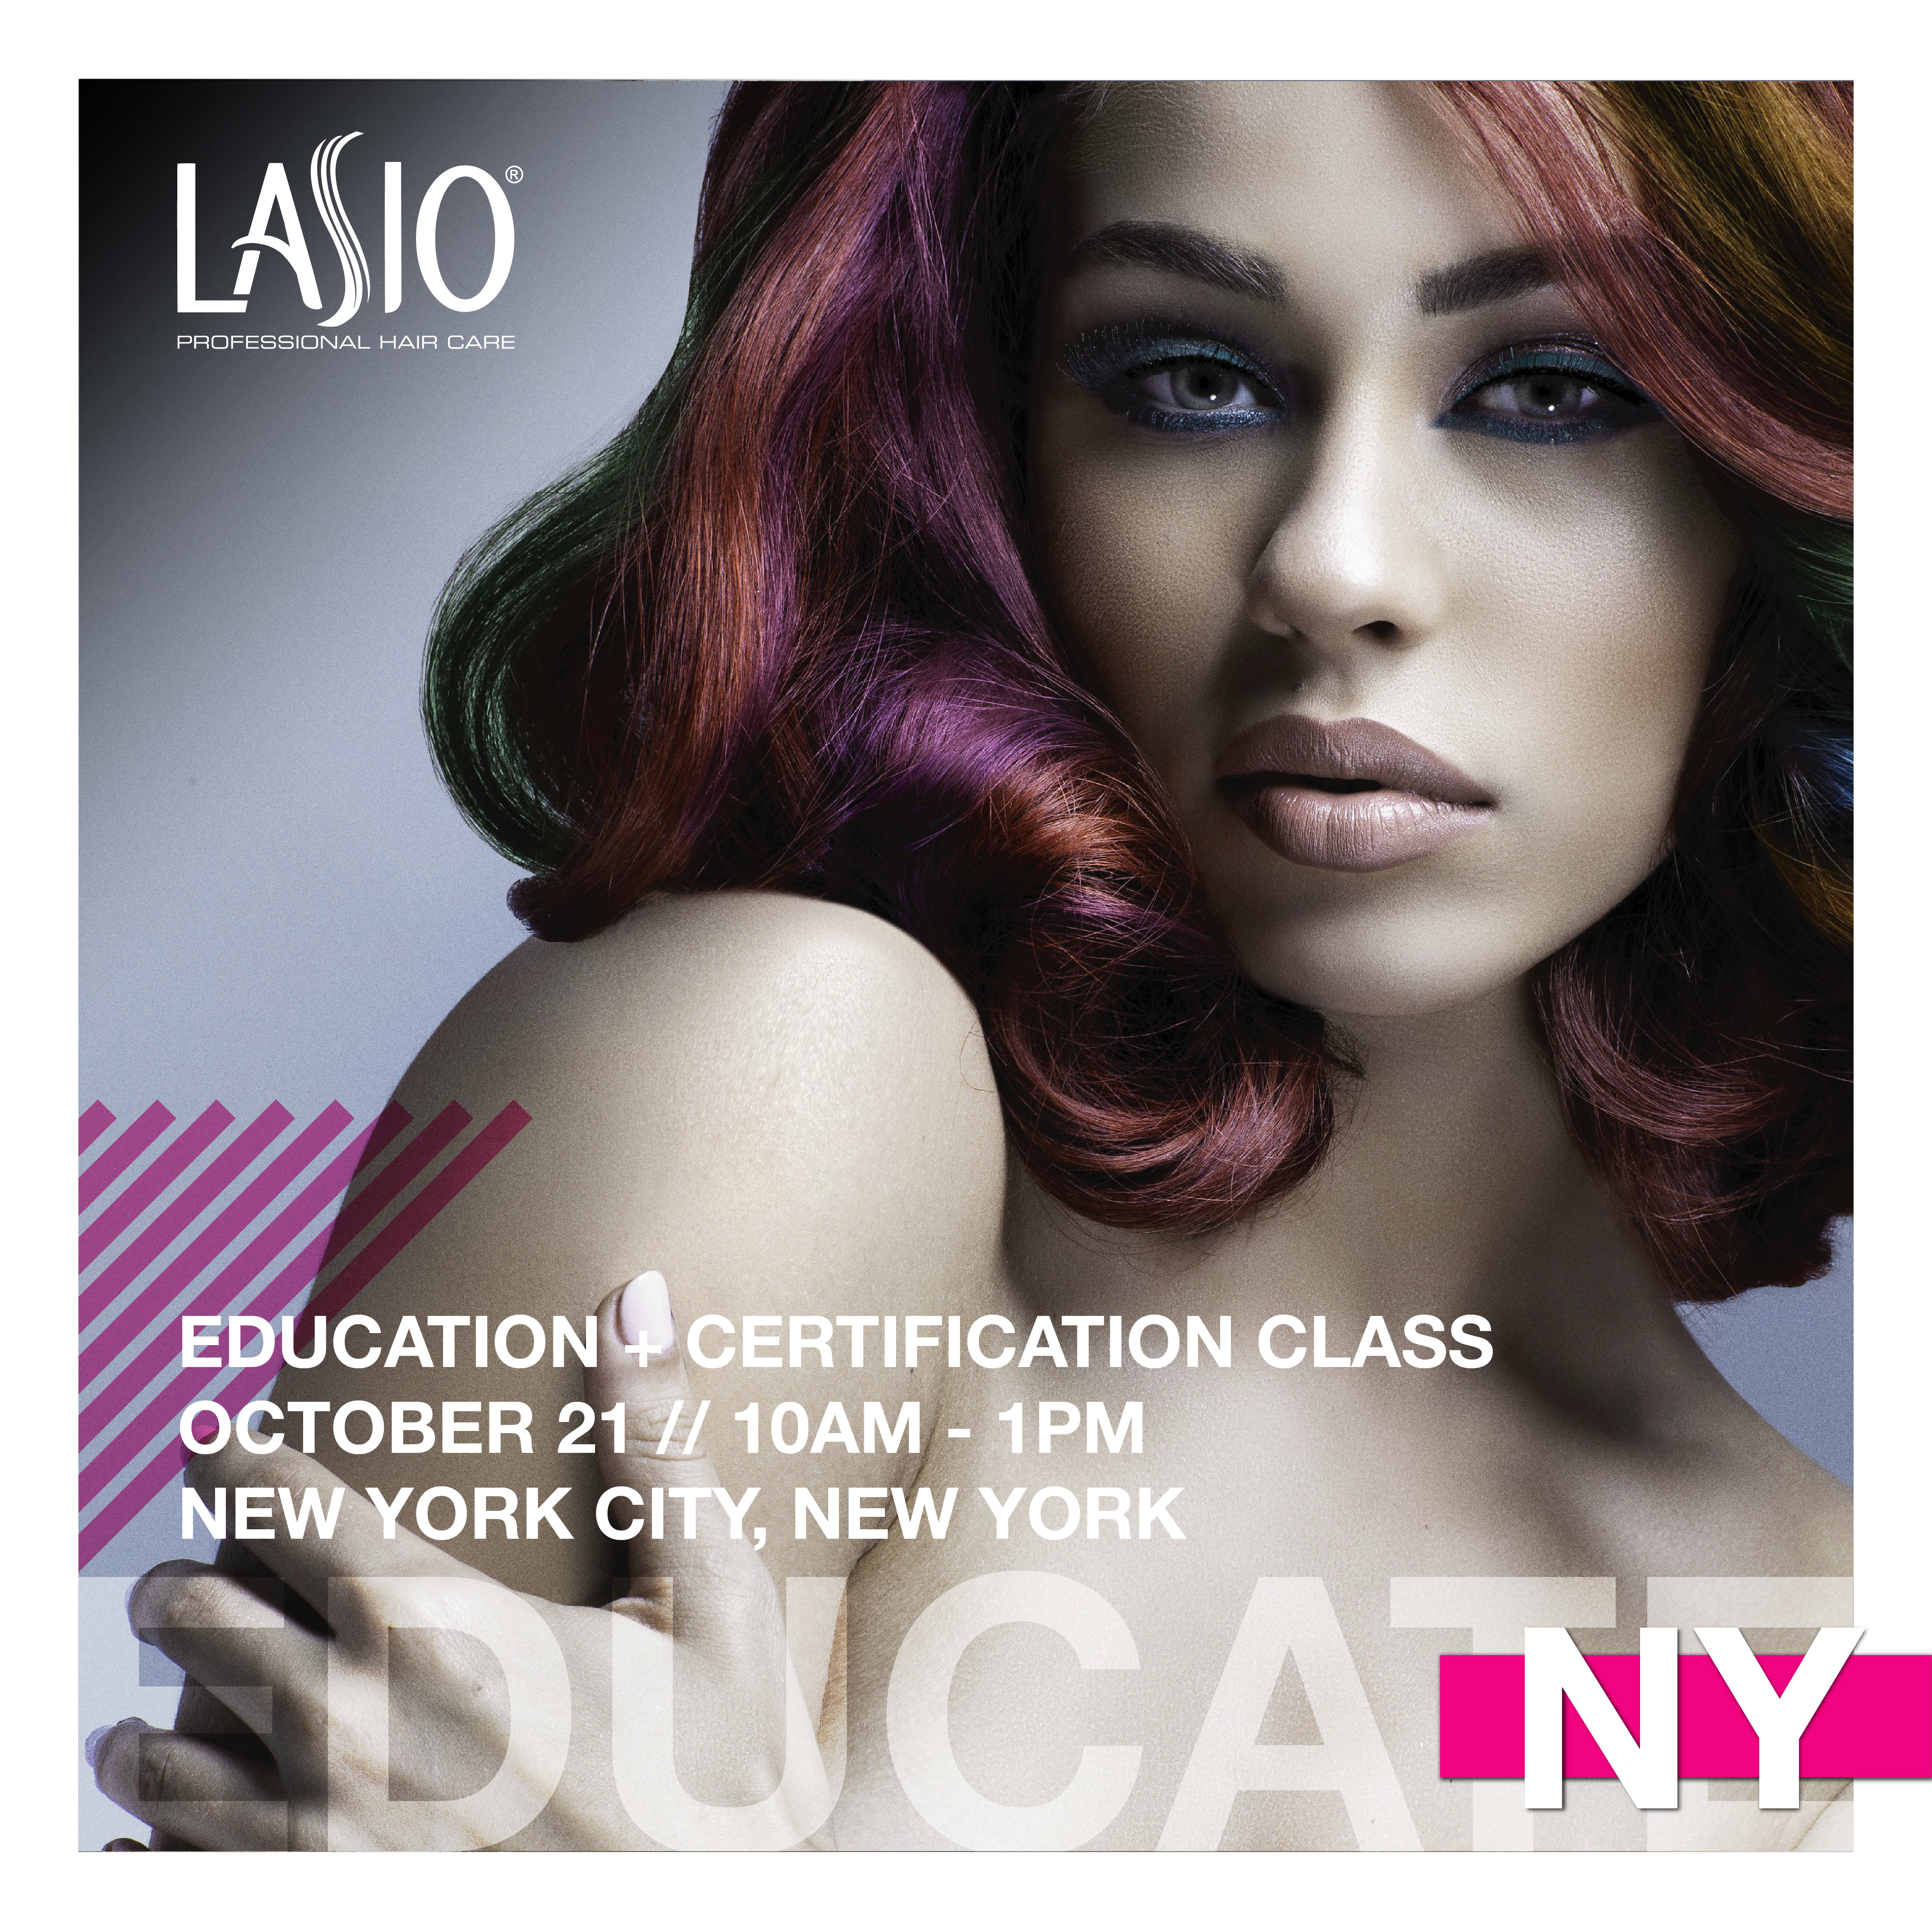 LASIO Certification + Education Class - October 21, 2019 - NYC, NY